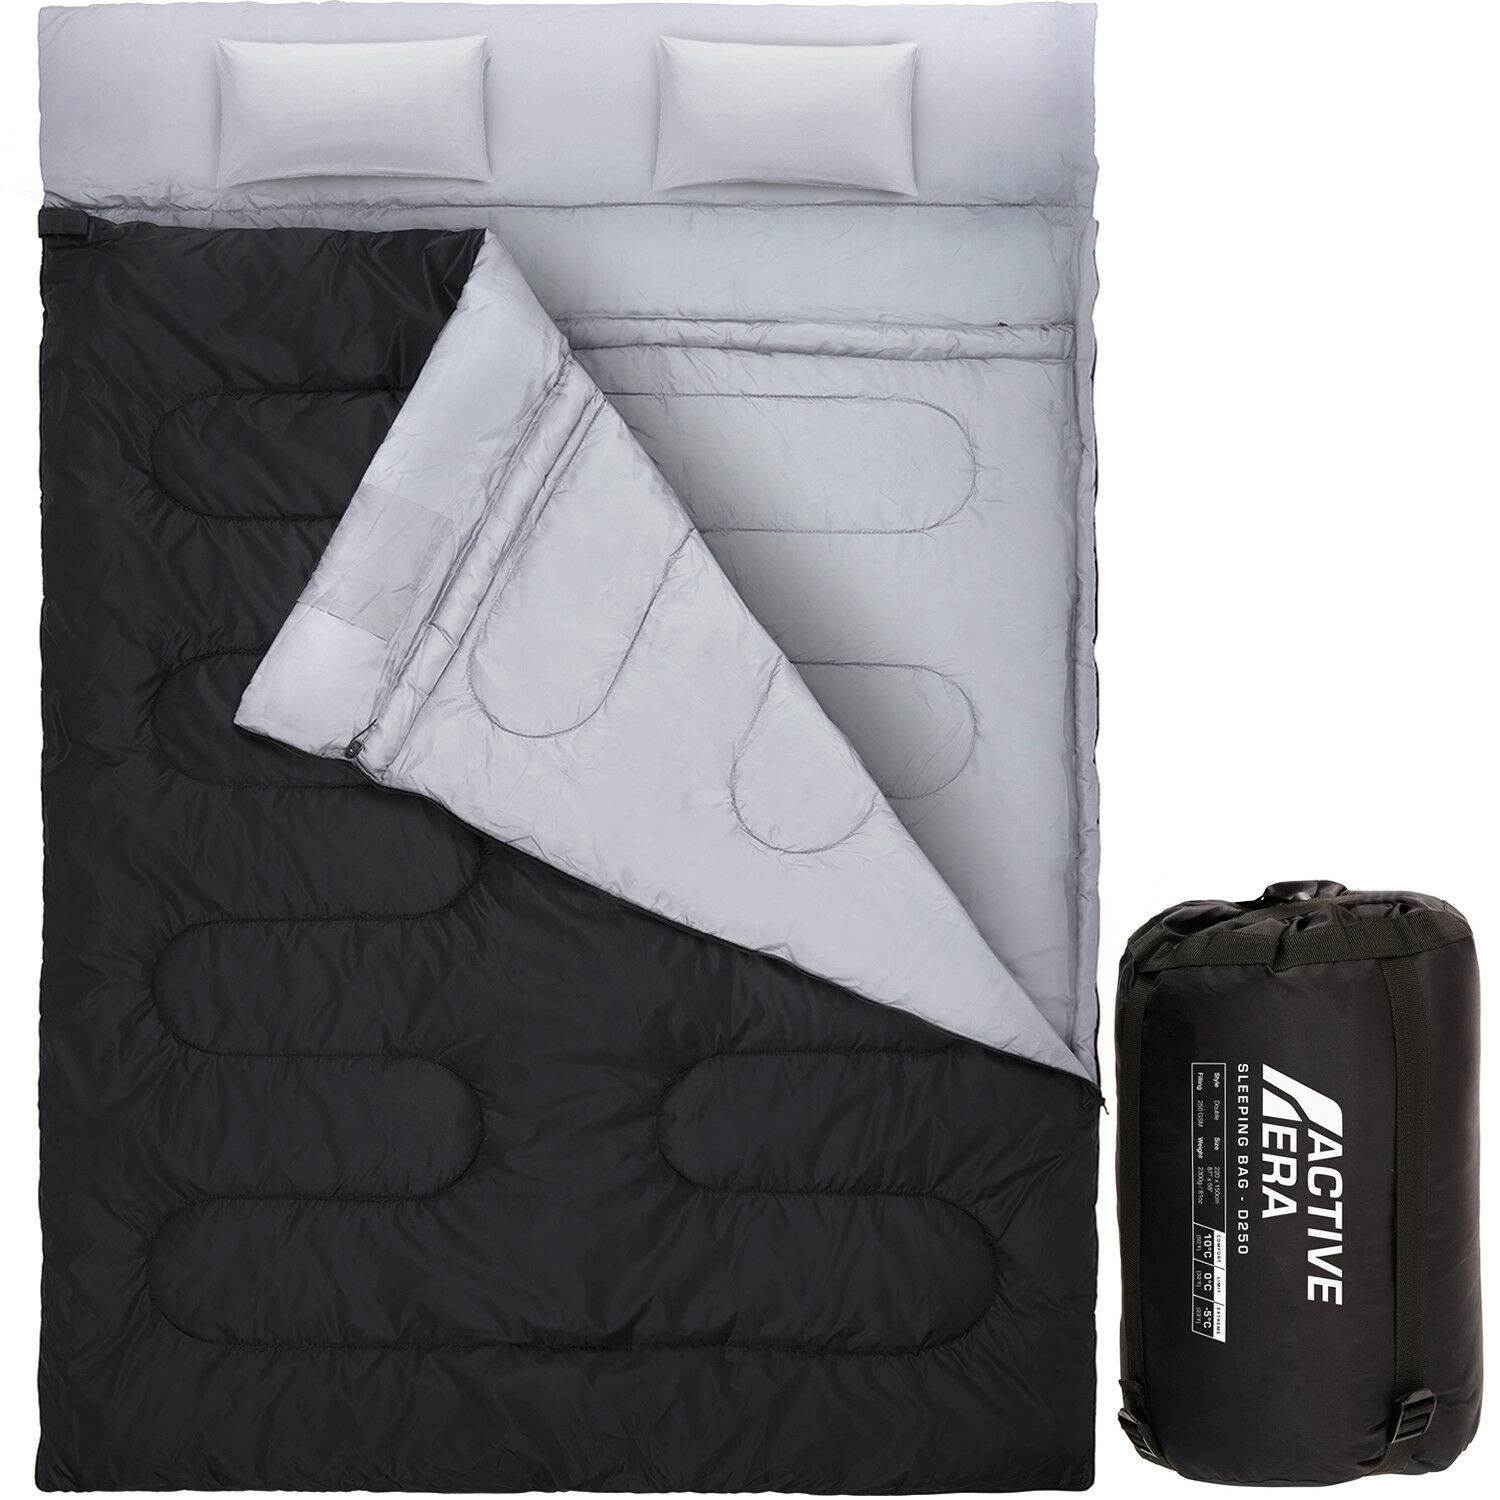 Double Sleeping Bag - Extra Large Queen  Size - Congreens to 2 Singles - 3 Season  top brand